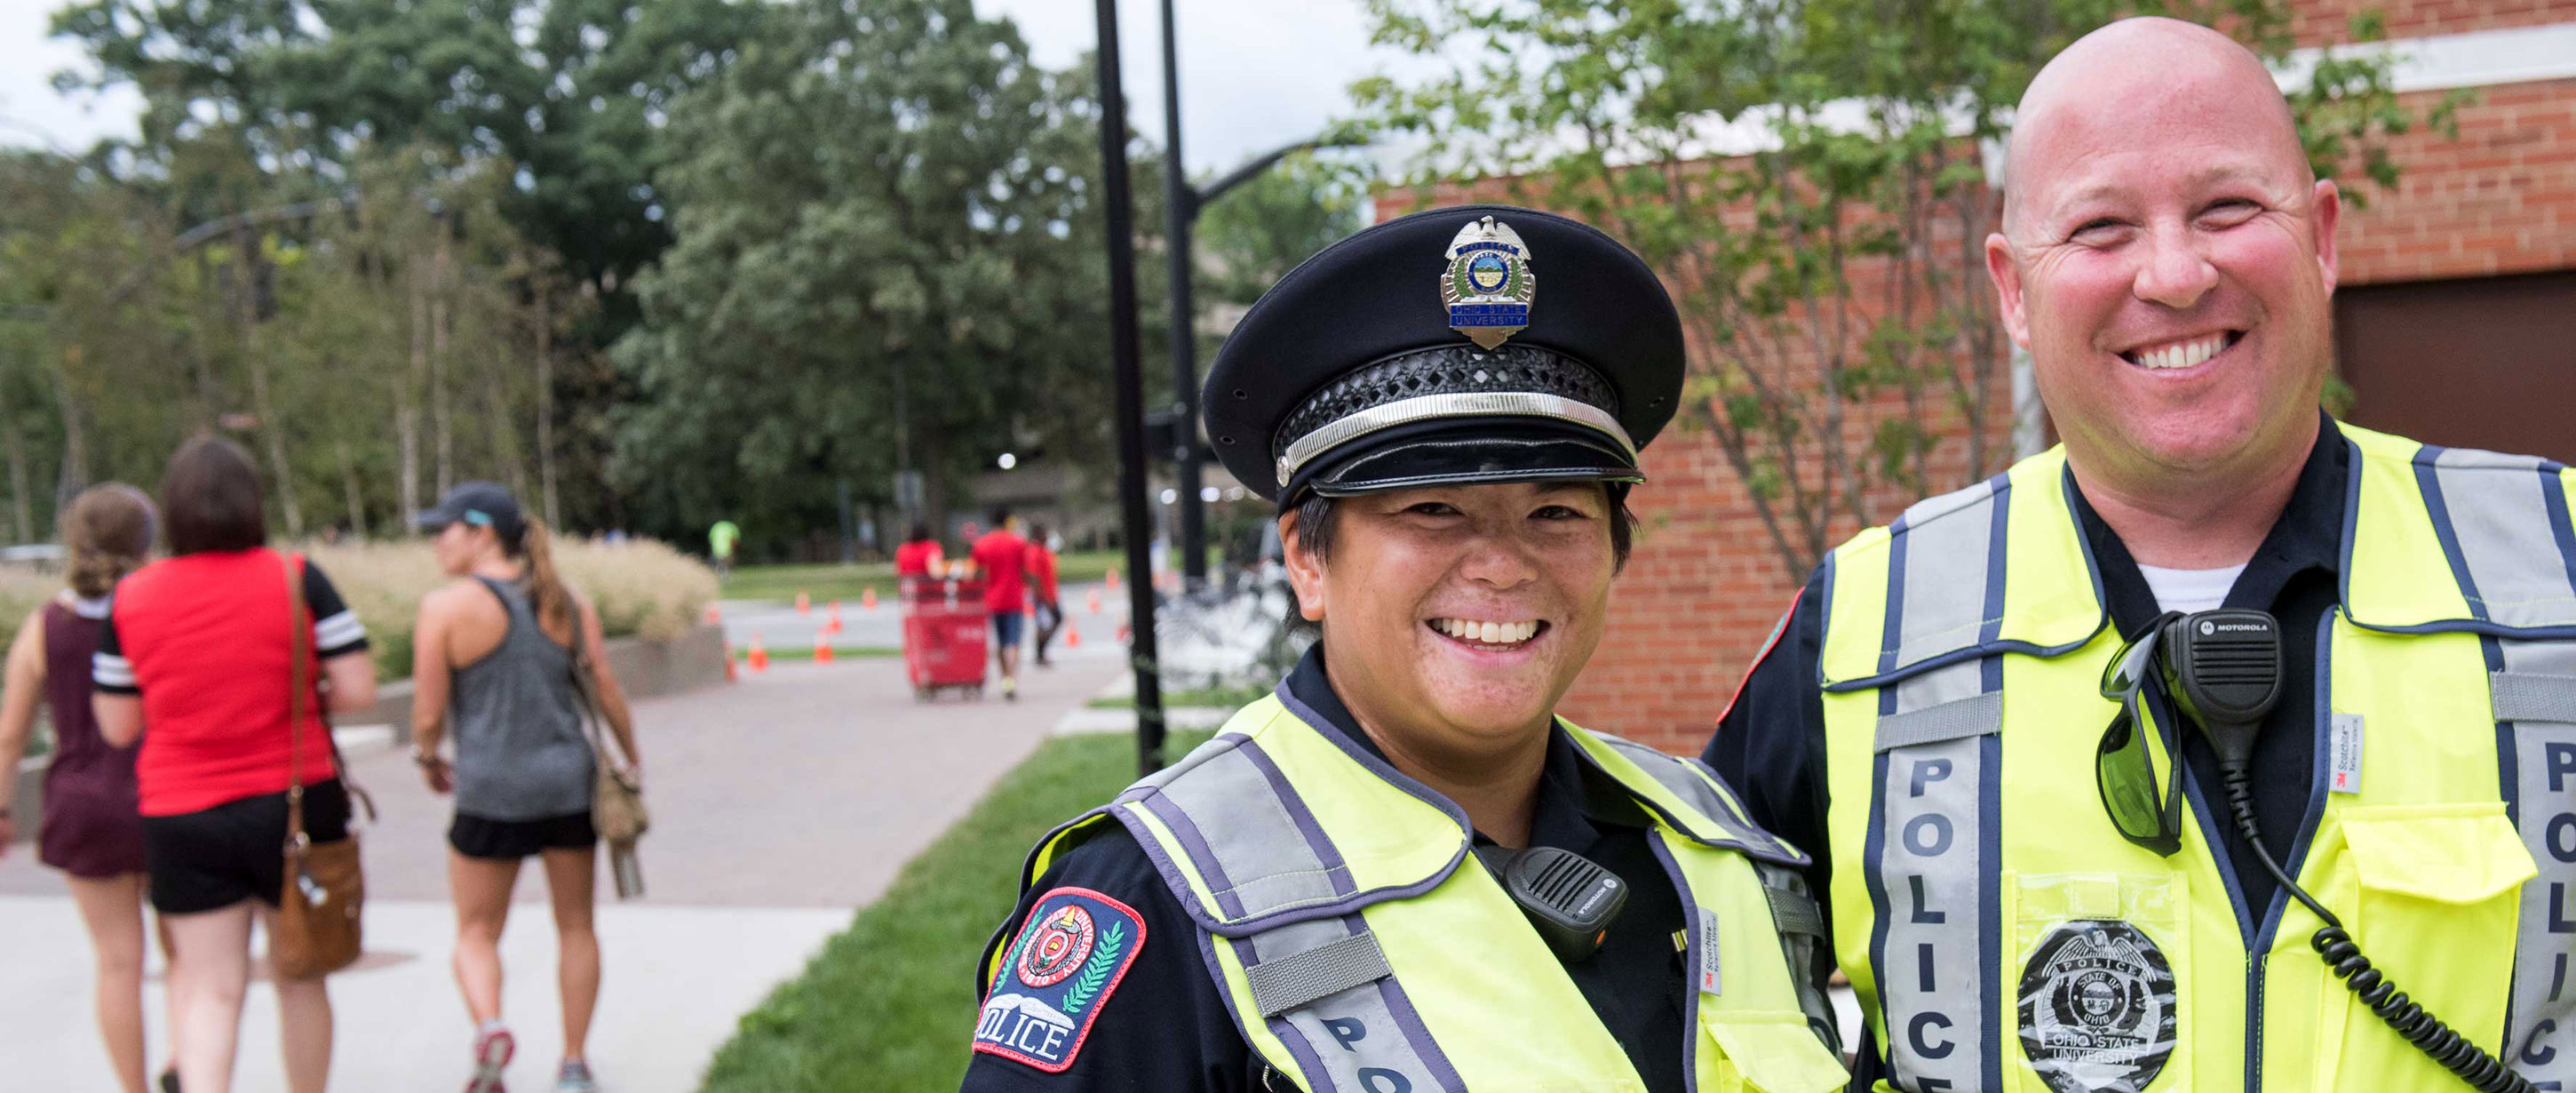 University police officers smiling